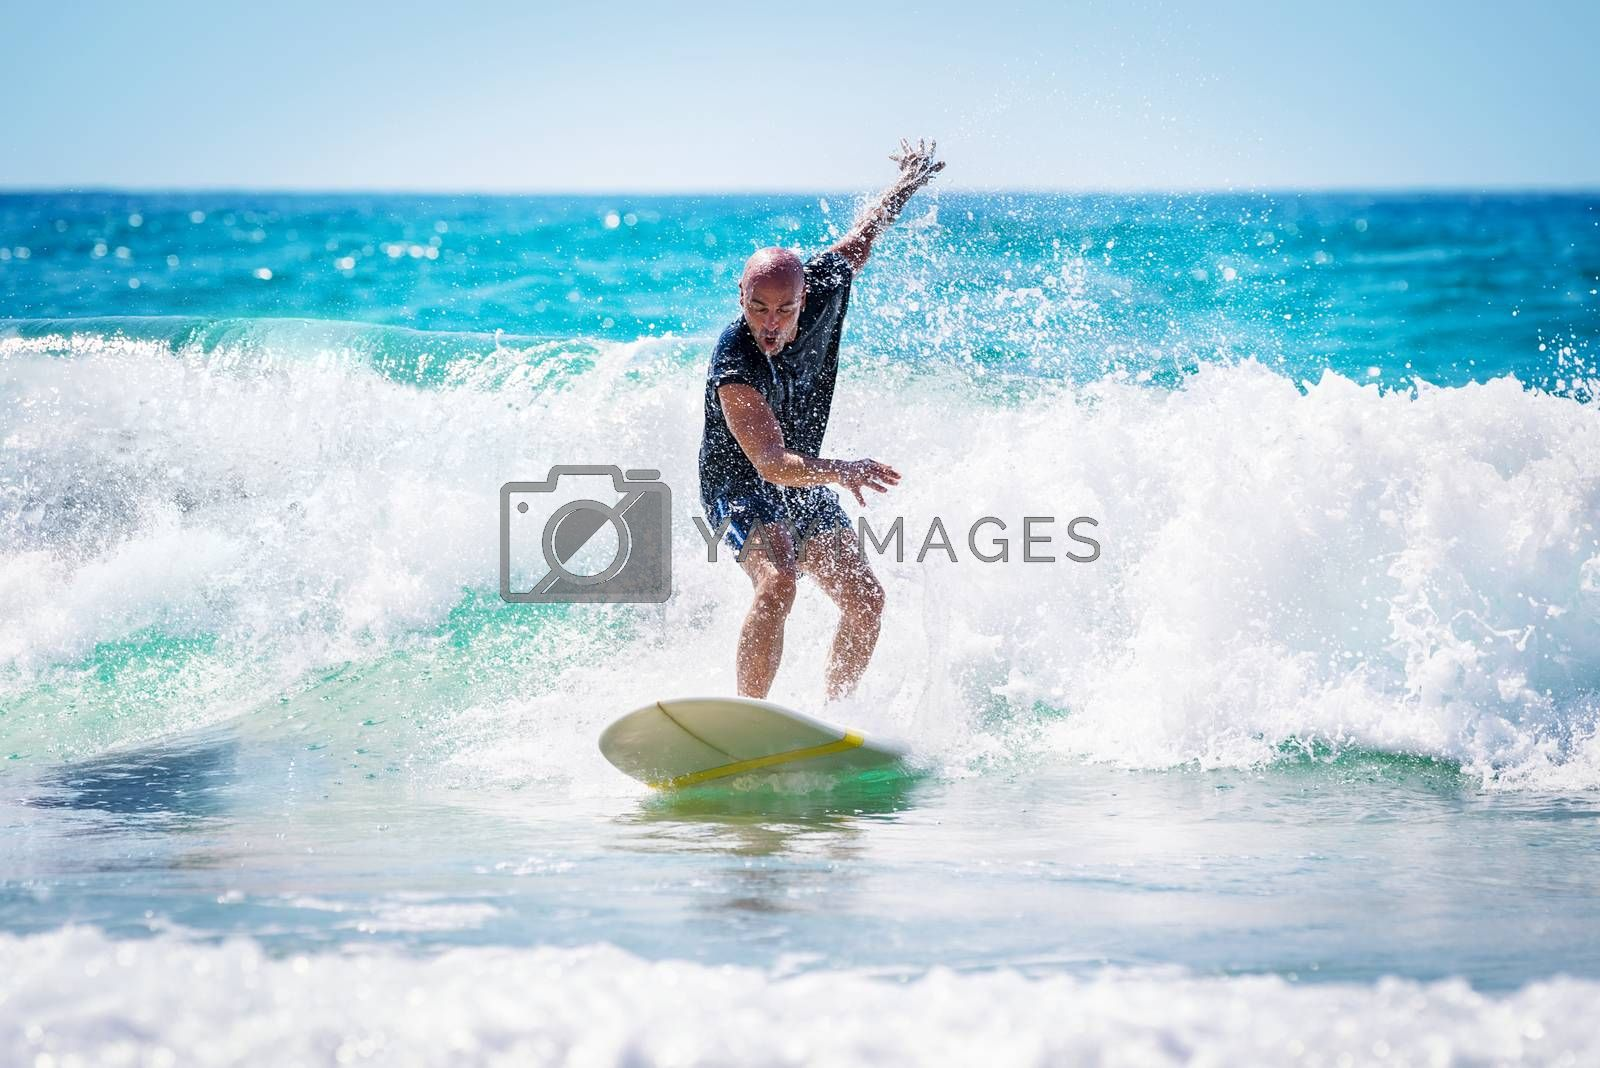 Surfer enjoying high waves in bright sunny day, active lifestyle, extreme water sport, summer time activities, recreation on the beach